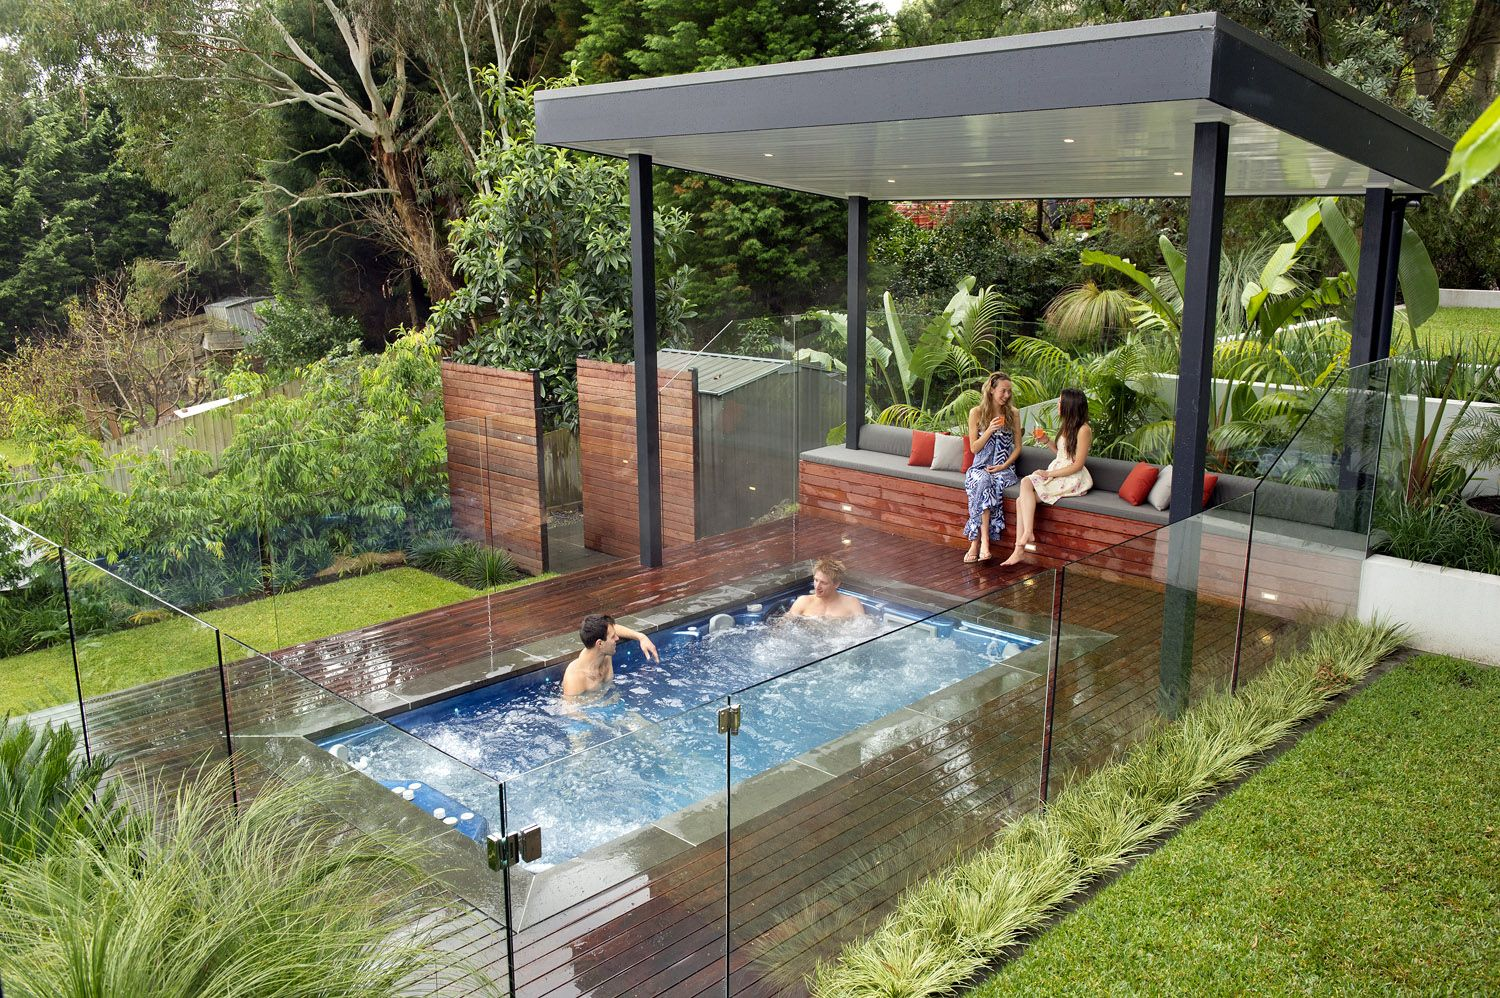 Modern nice design of the outdoor spa landscaping ideas for Pool design ideas